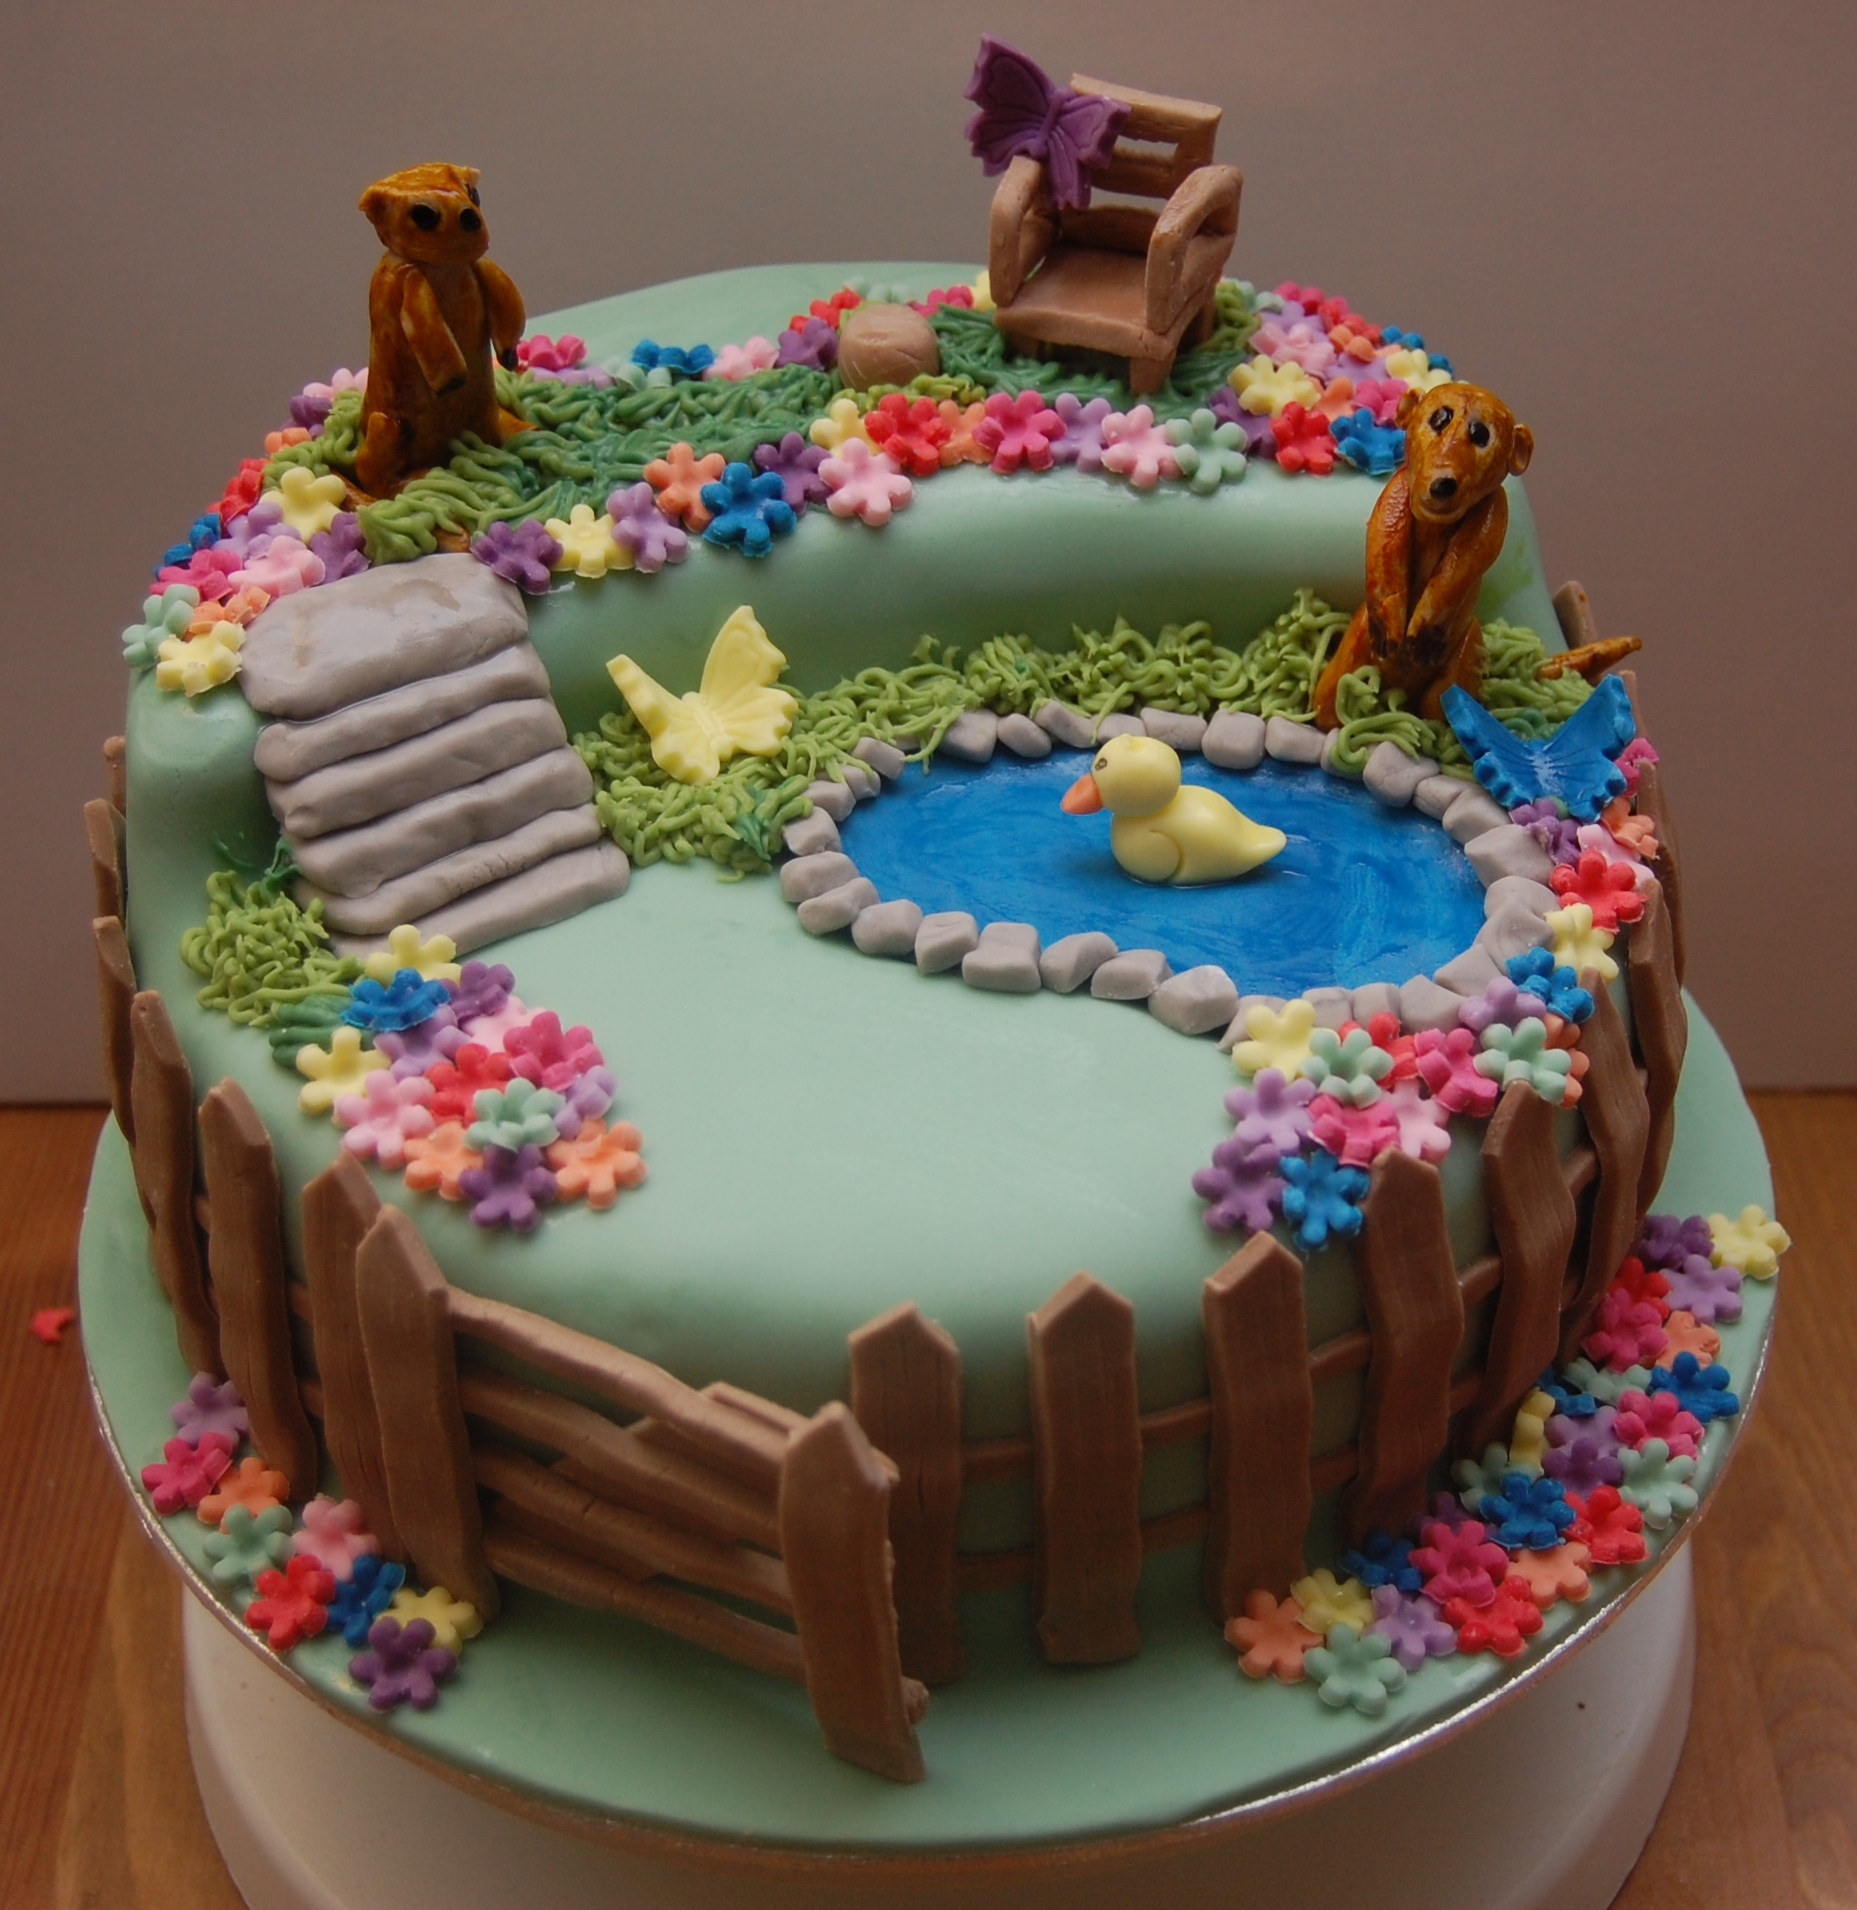 Birthday Cake Ideas Garden Image Inspiration of Cake and